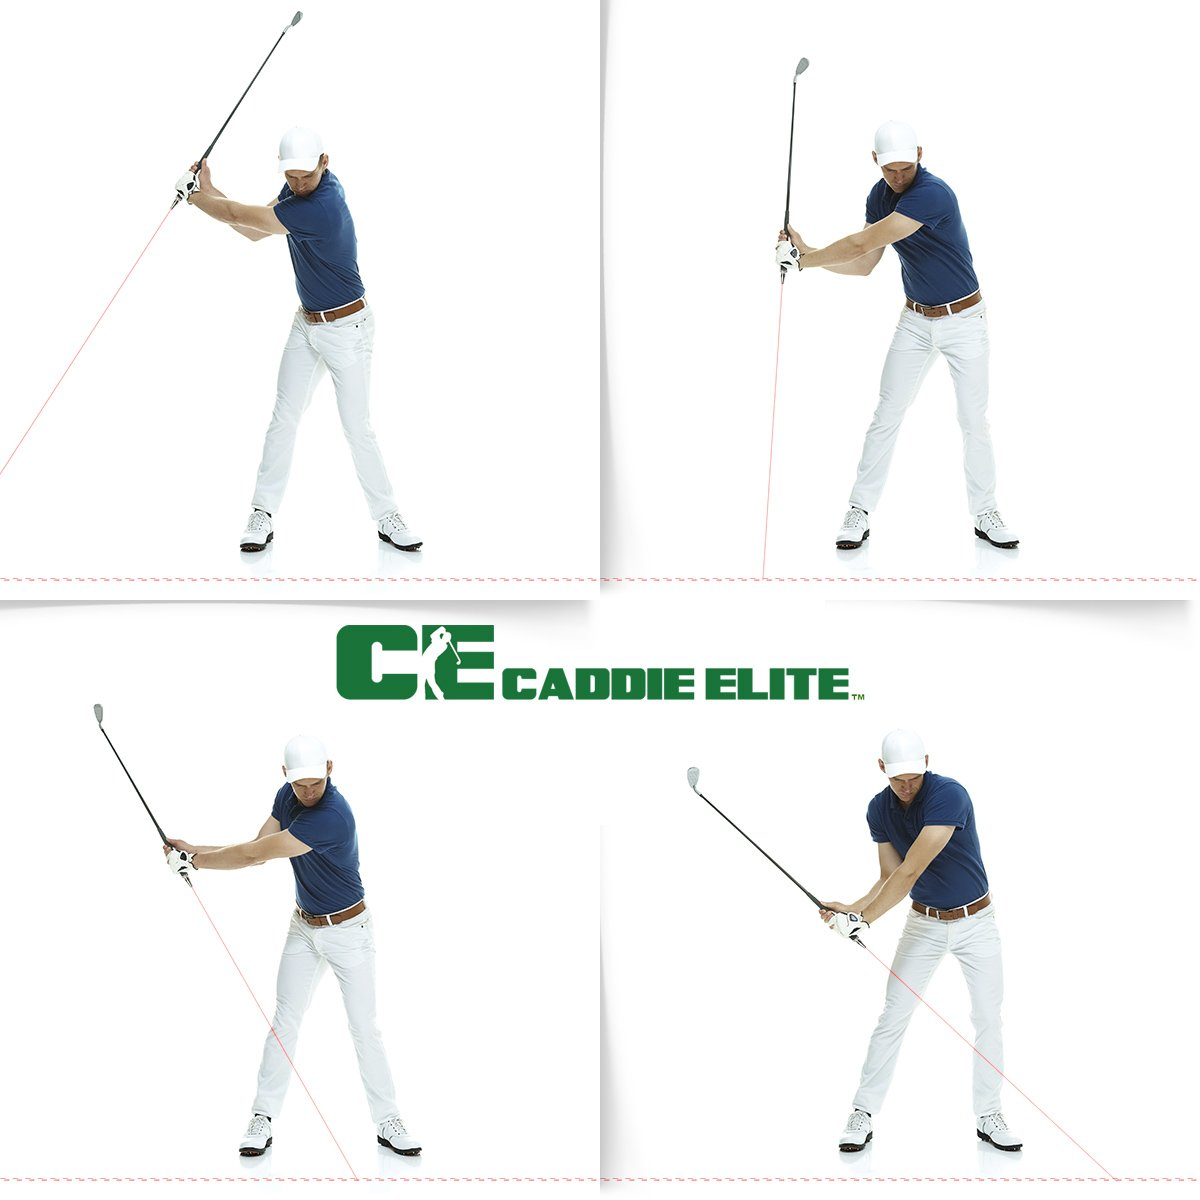 Want to Fix Your Swing in Seconds. Use This - Plane Sight Laser Golf Training Aid By Caddie Elite   B00V94K7CM